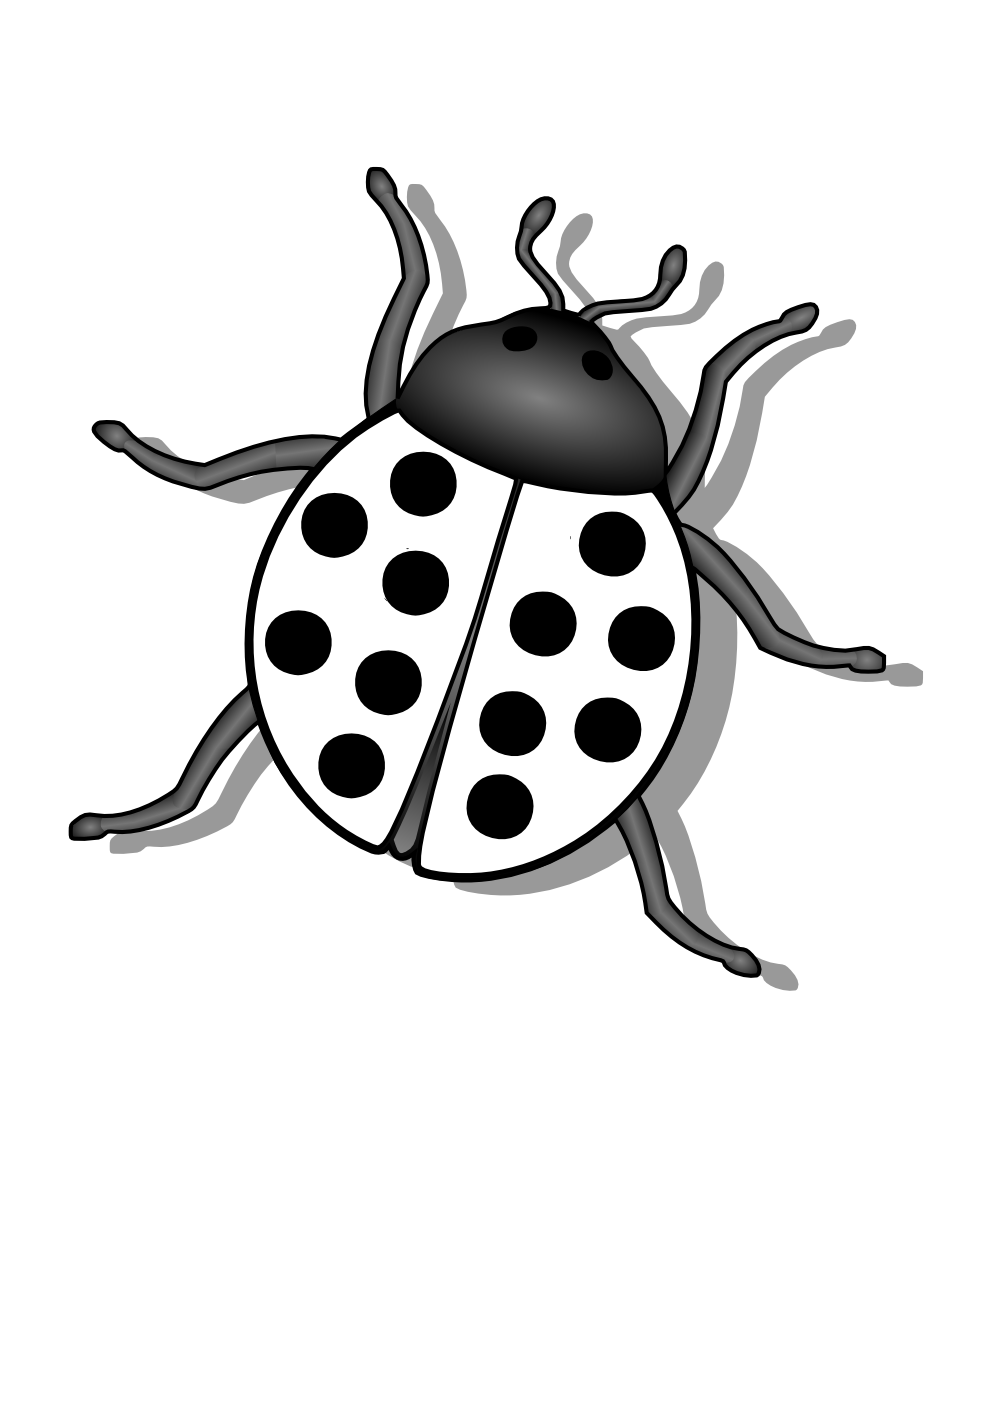 svg royalty free library Bugs PNG Black And White Transparent Bugs Black And White